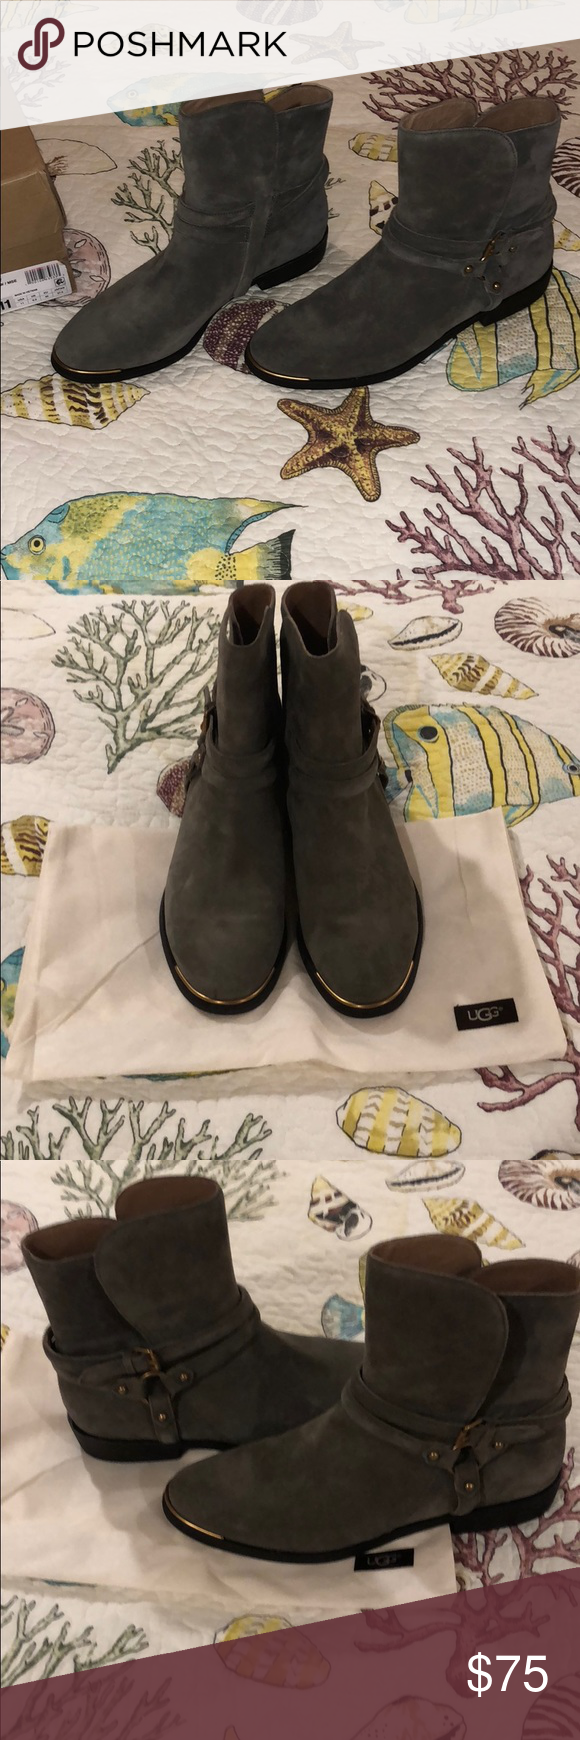 84f9793810b UGG Kelby Super cute grey suede boots! Brand new in original box ...